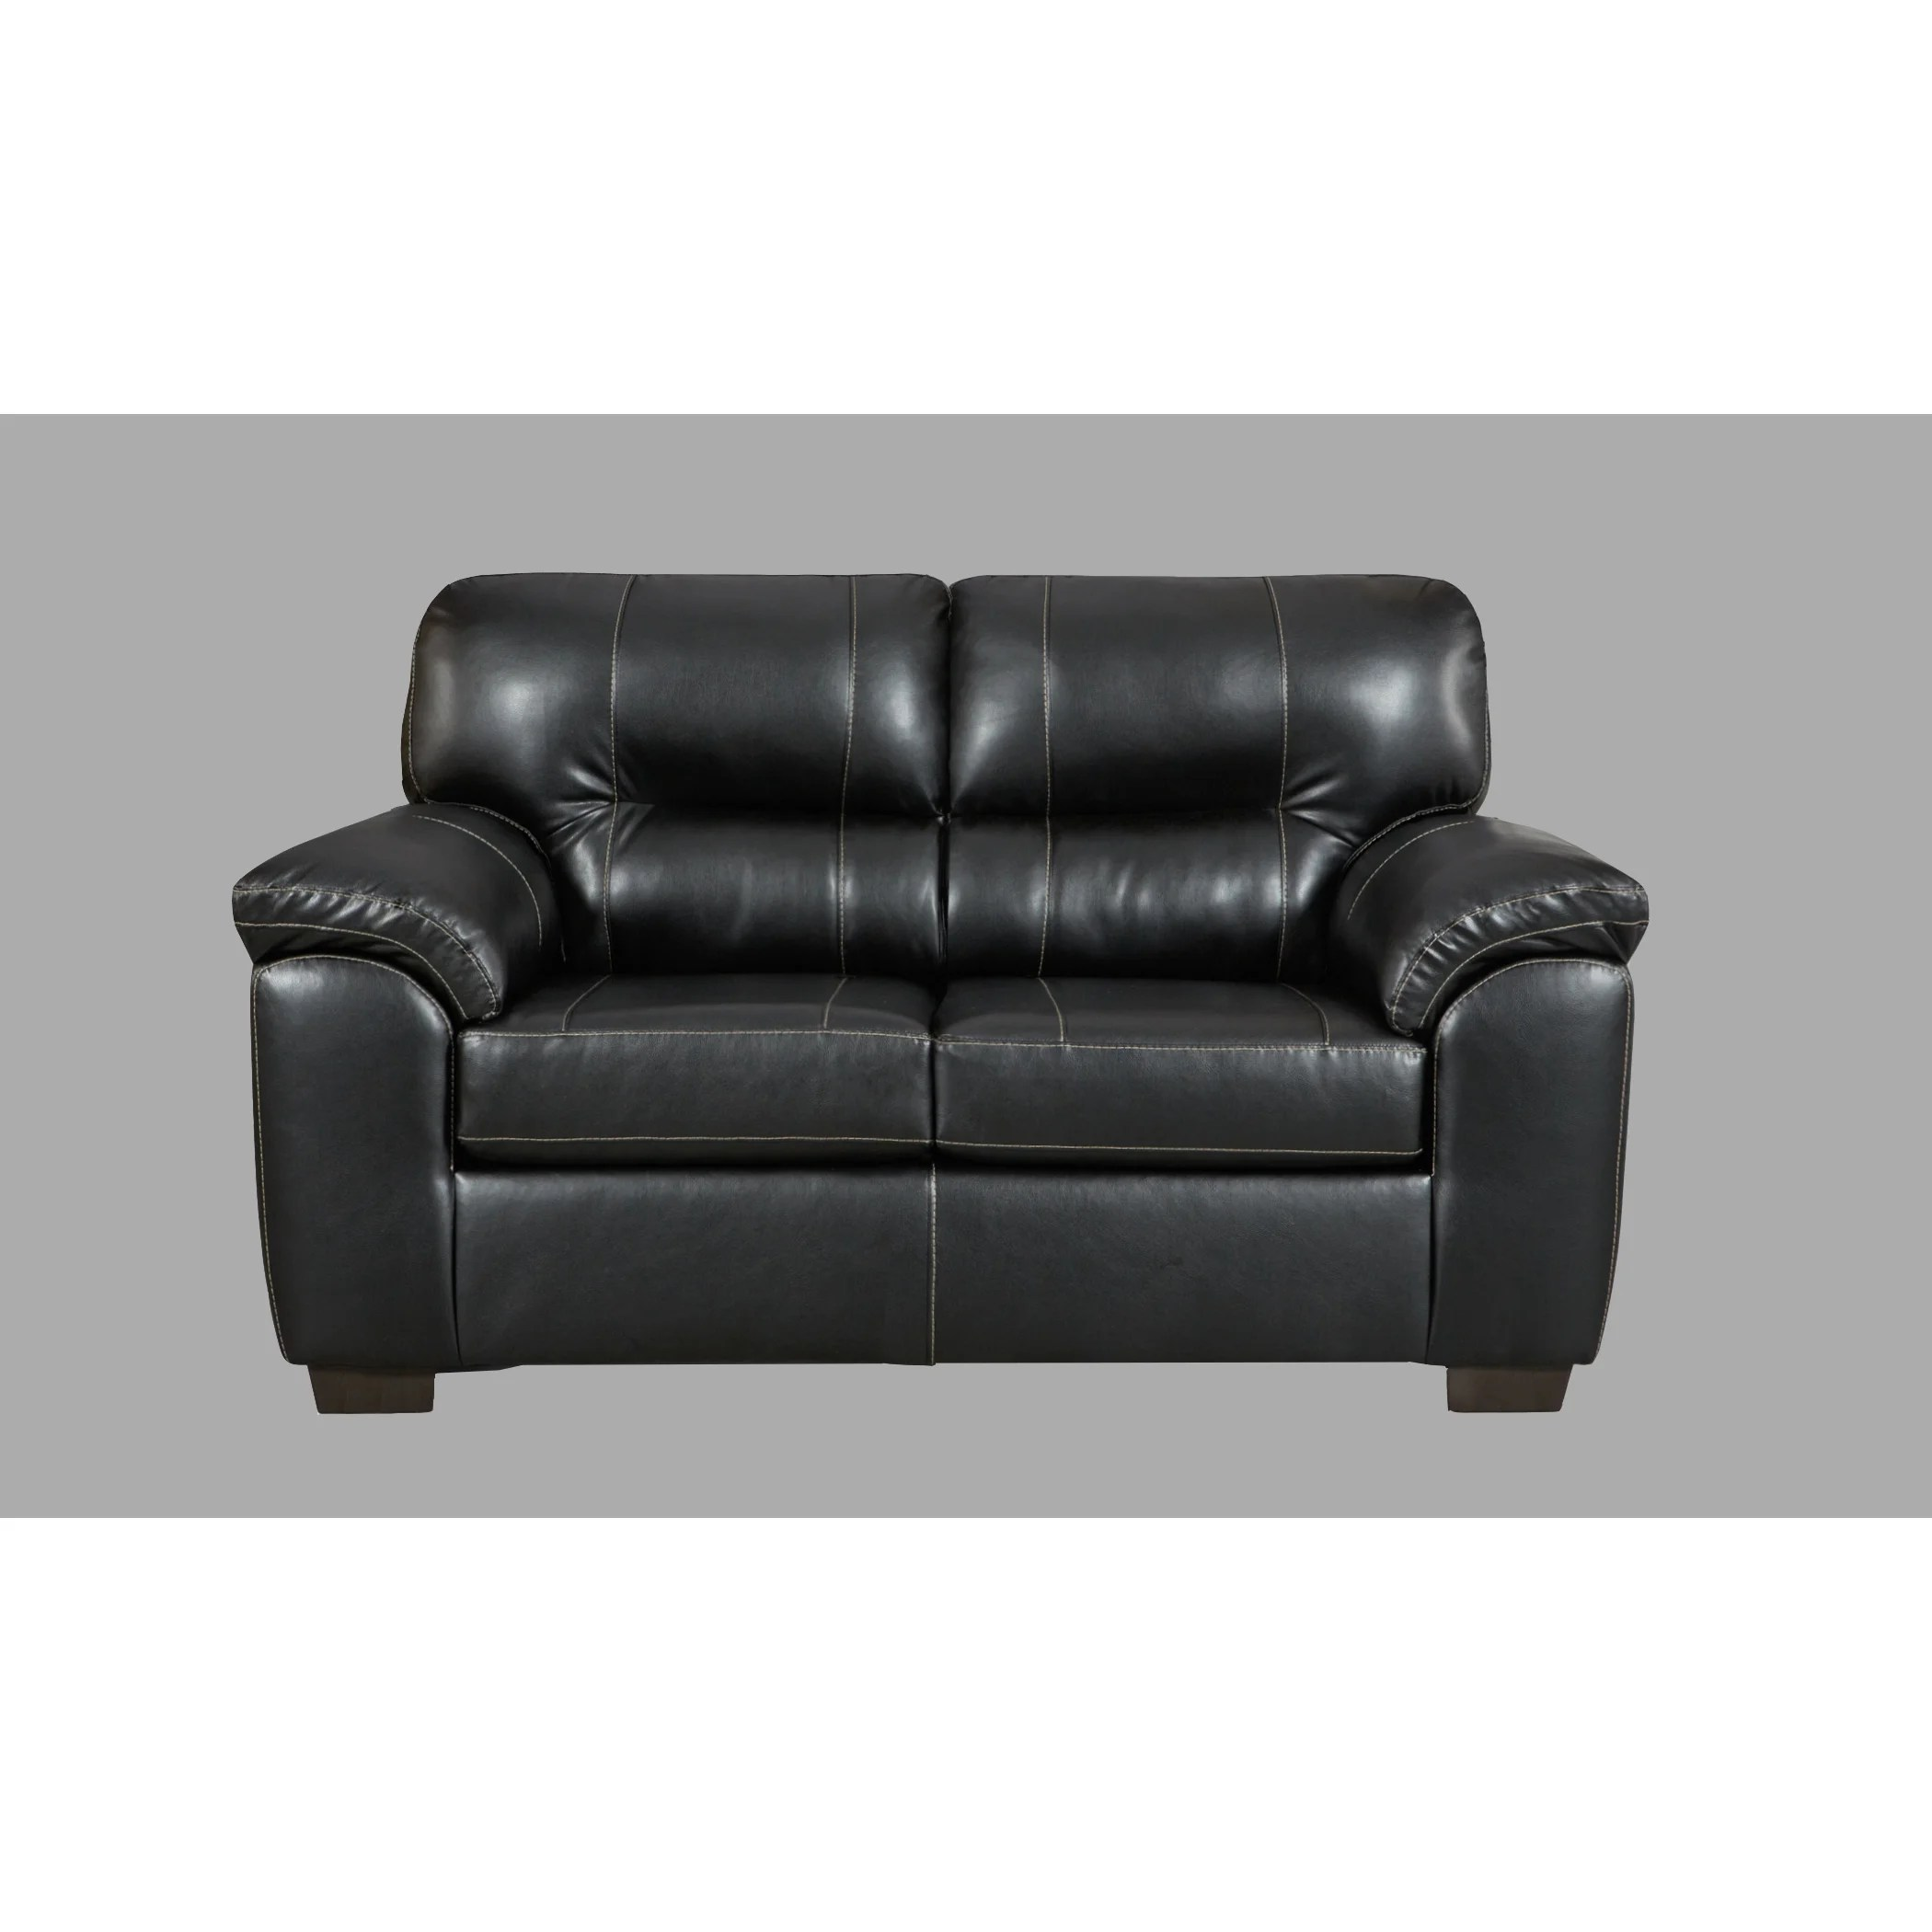 Sofa Foam Leeds Leeds Pu Leather Living Room Set With Sofa And Loveseat Set In Austin Black